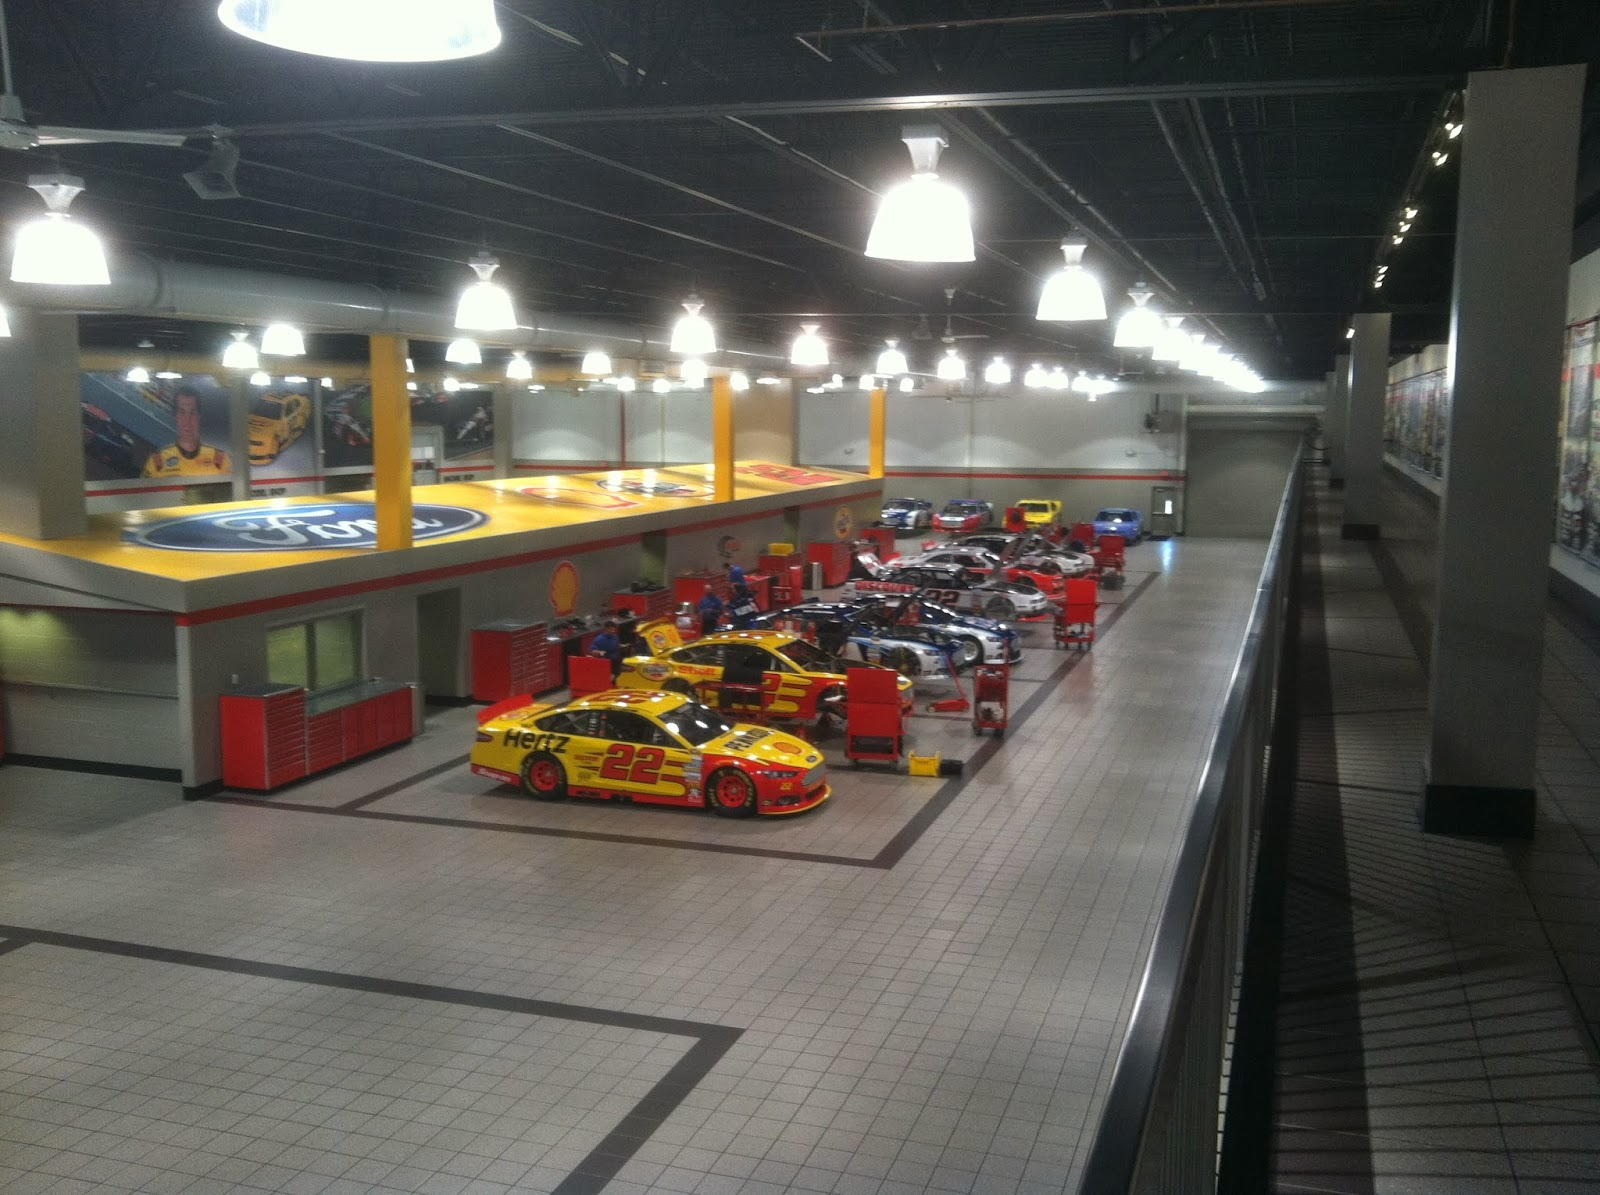 Welcome to the NASCAR store at Bass Pro Shops, your source for NASCAR collectibles, gifts and decals from a variety of drivers.